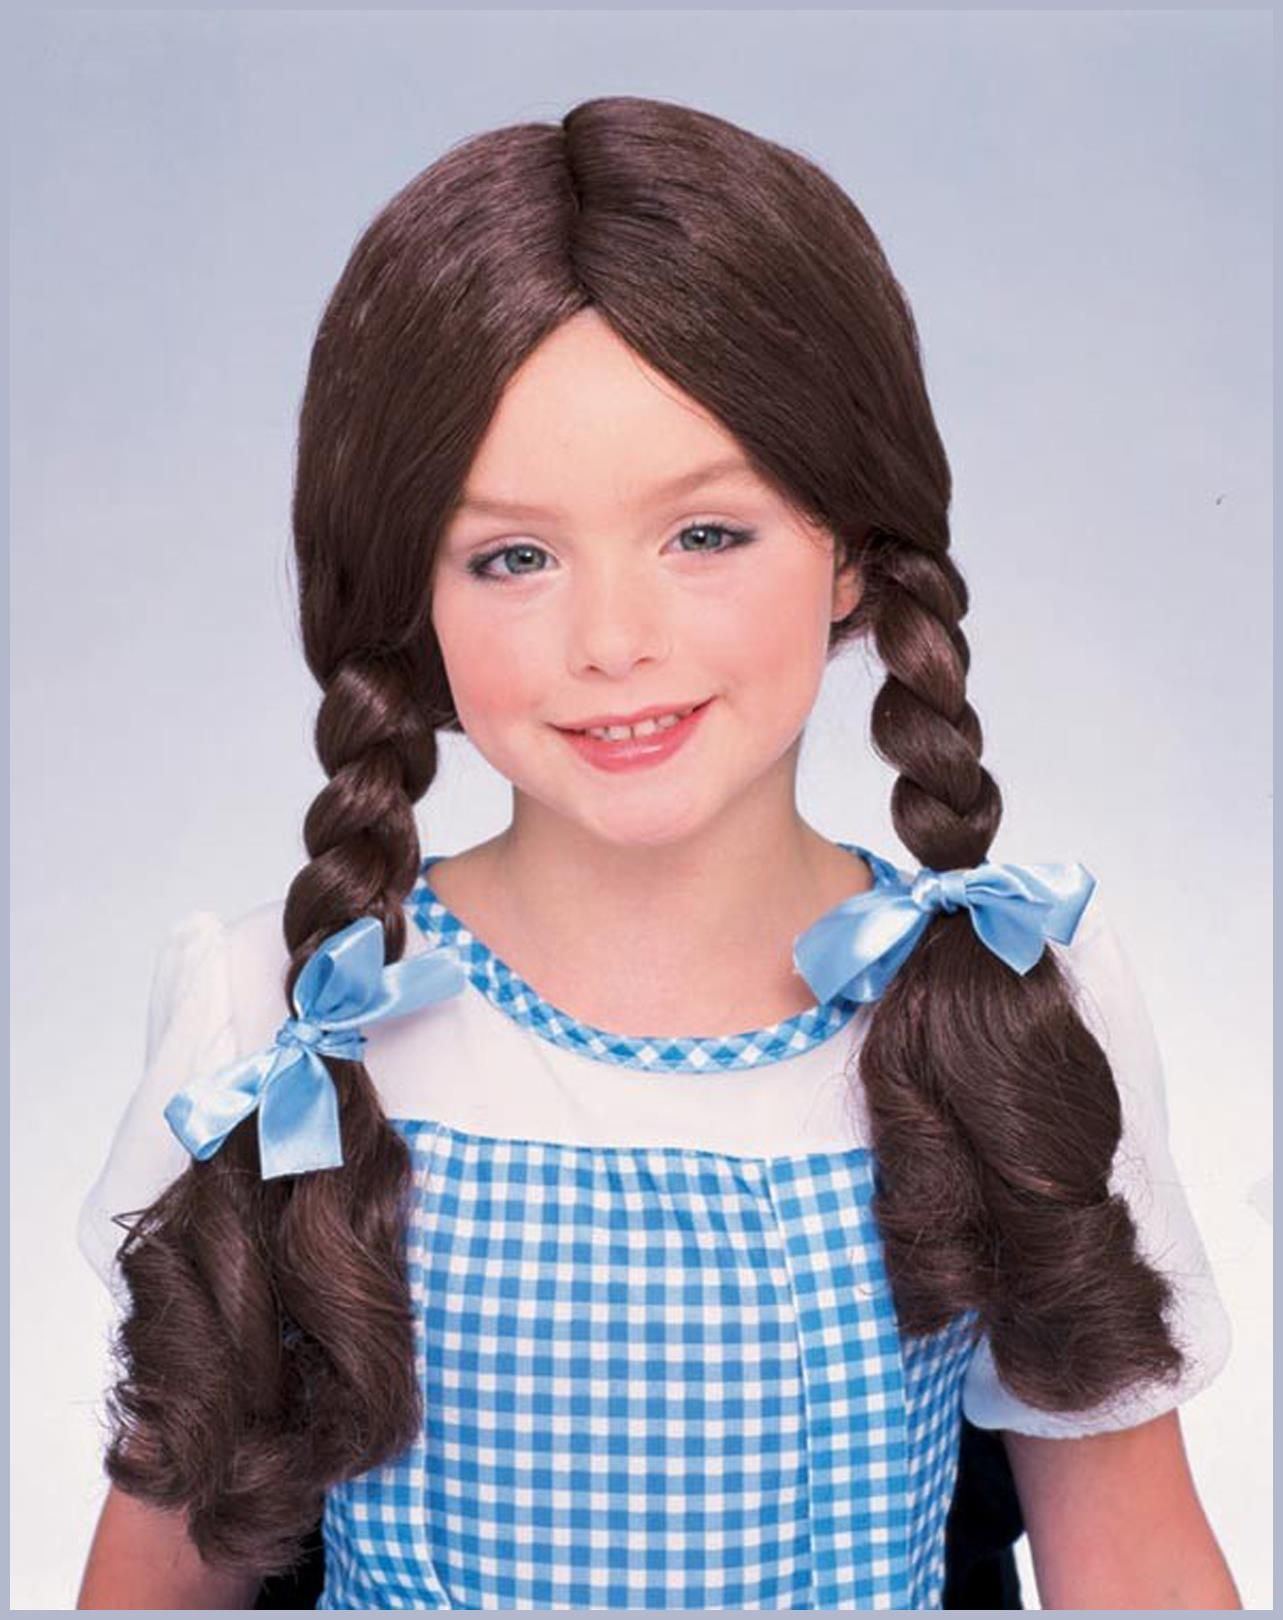 The Wizard Of Oz Dorothy Wig Partybell Com Kids Wigs Halloween Costume Wigs Dorothy Wizard Of Oz